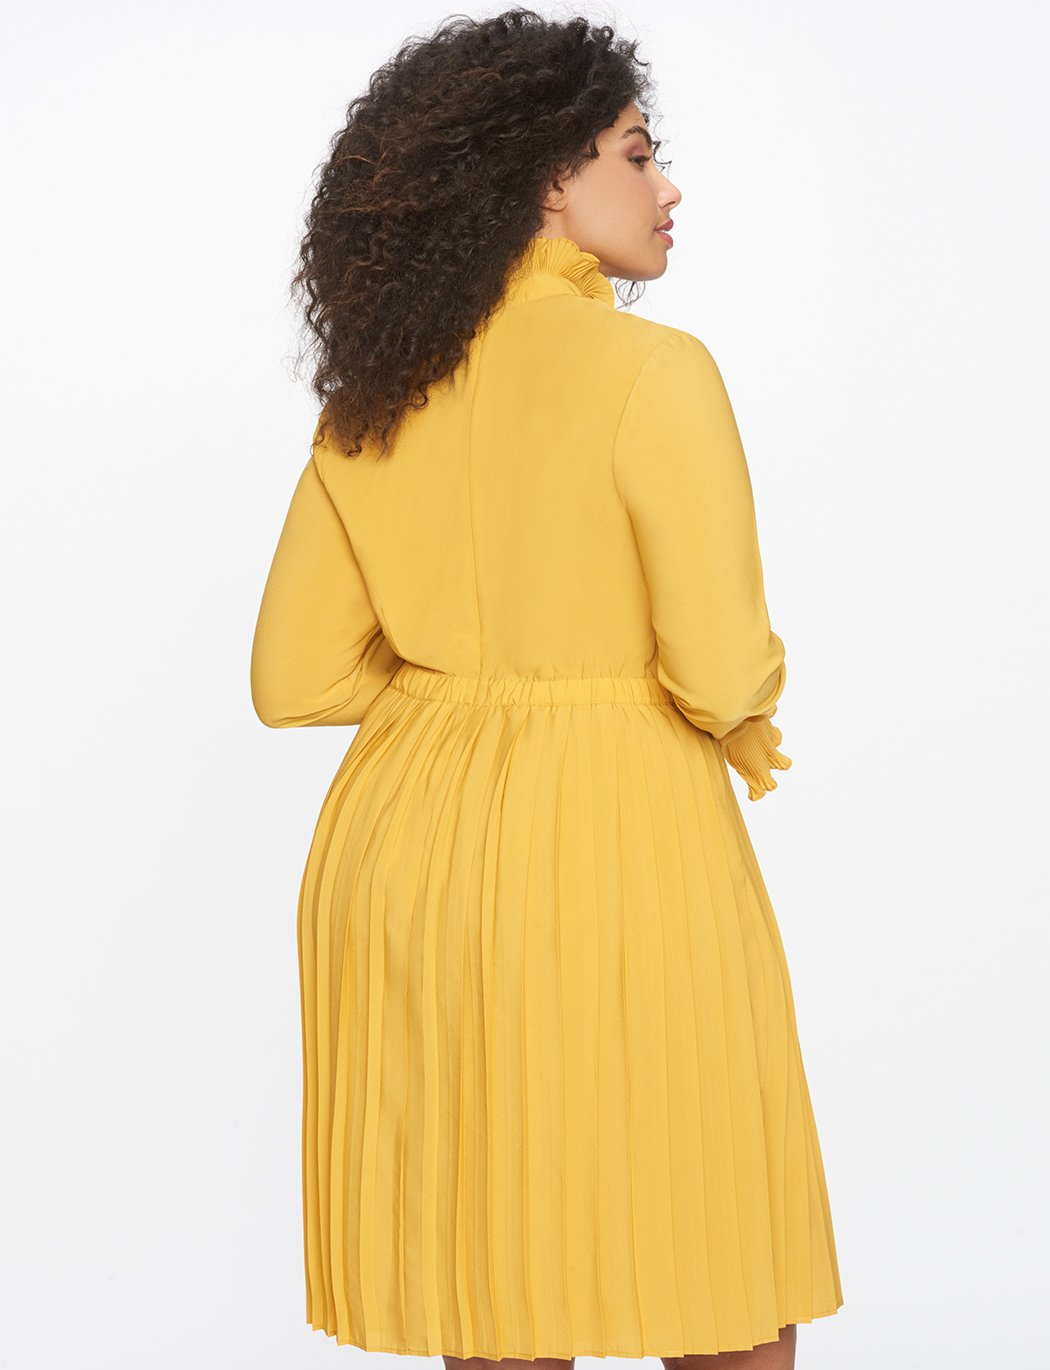 752c145ea0 Pleated Dress with Ruffle Detail